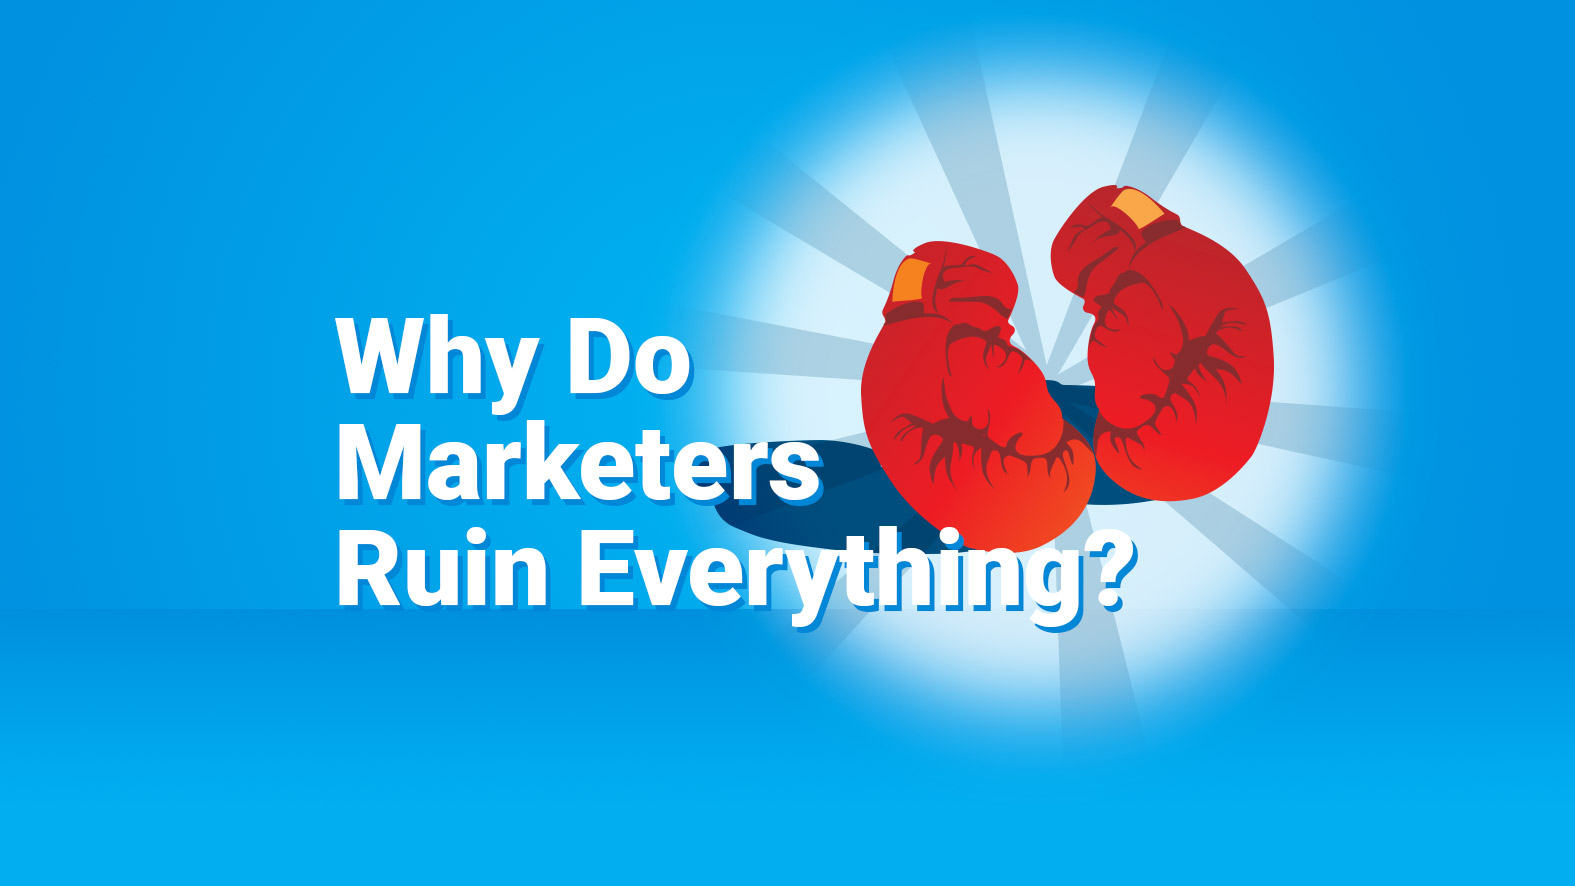 Why Do Marketers Ruin Everything?